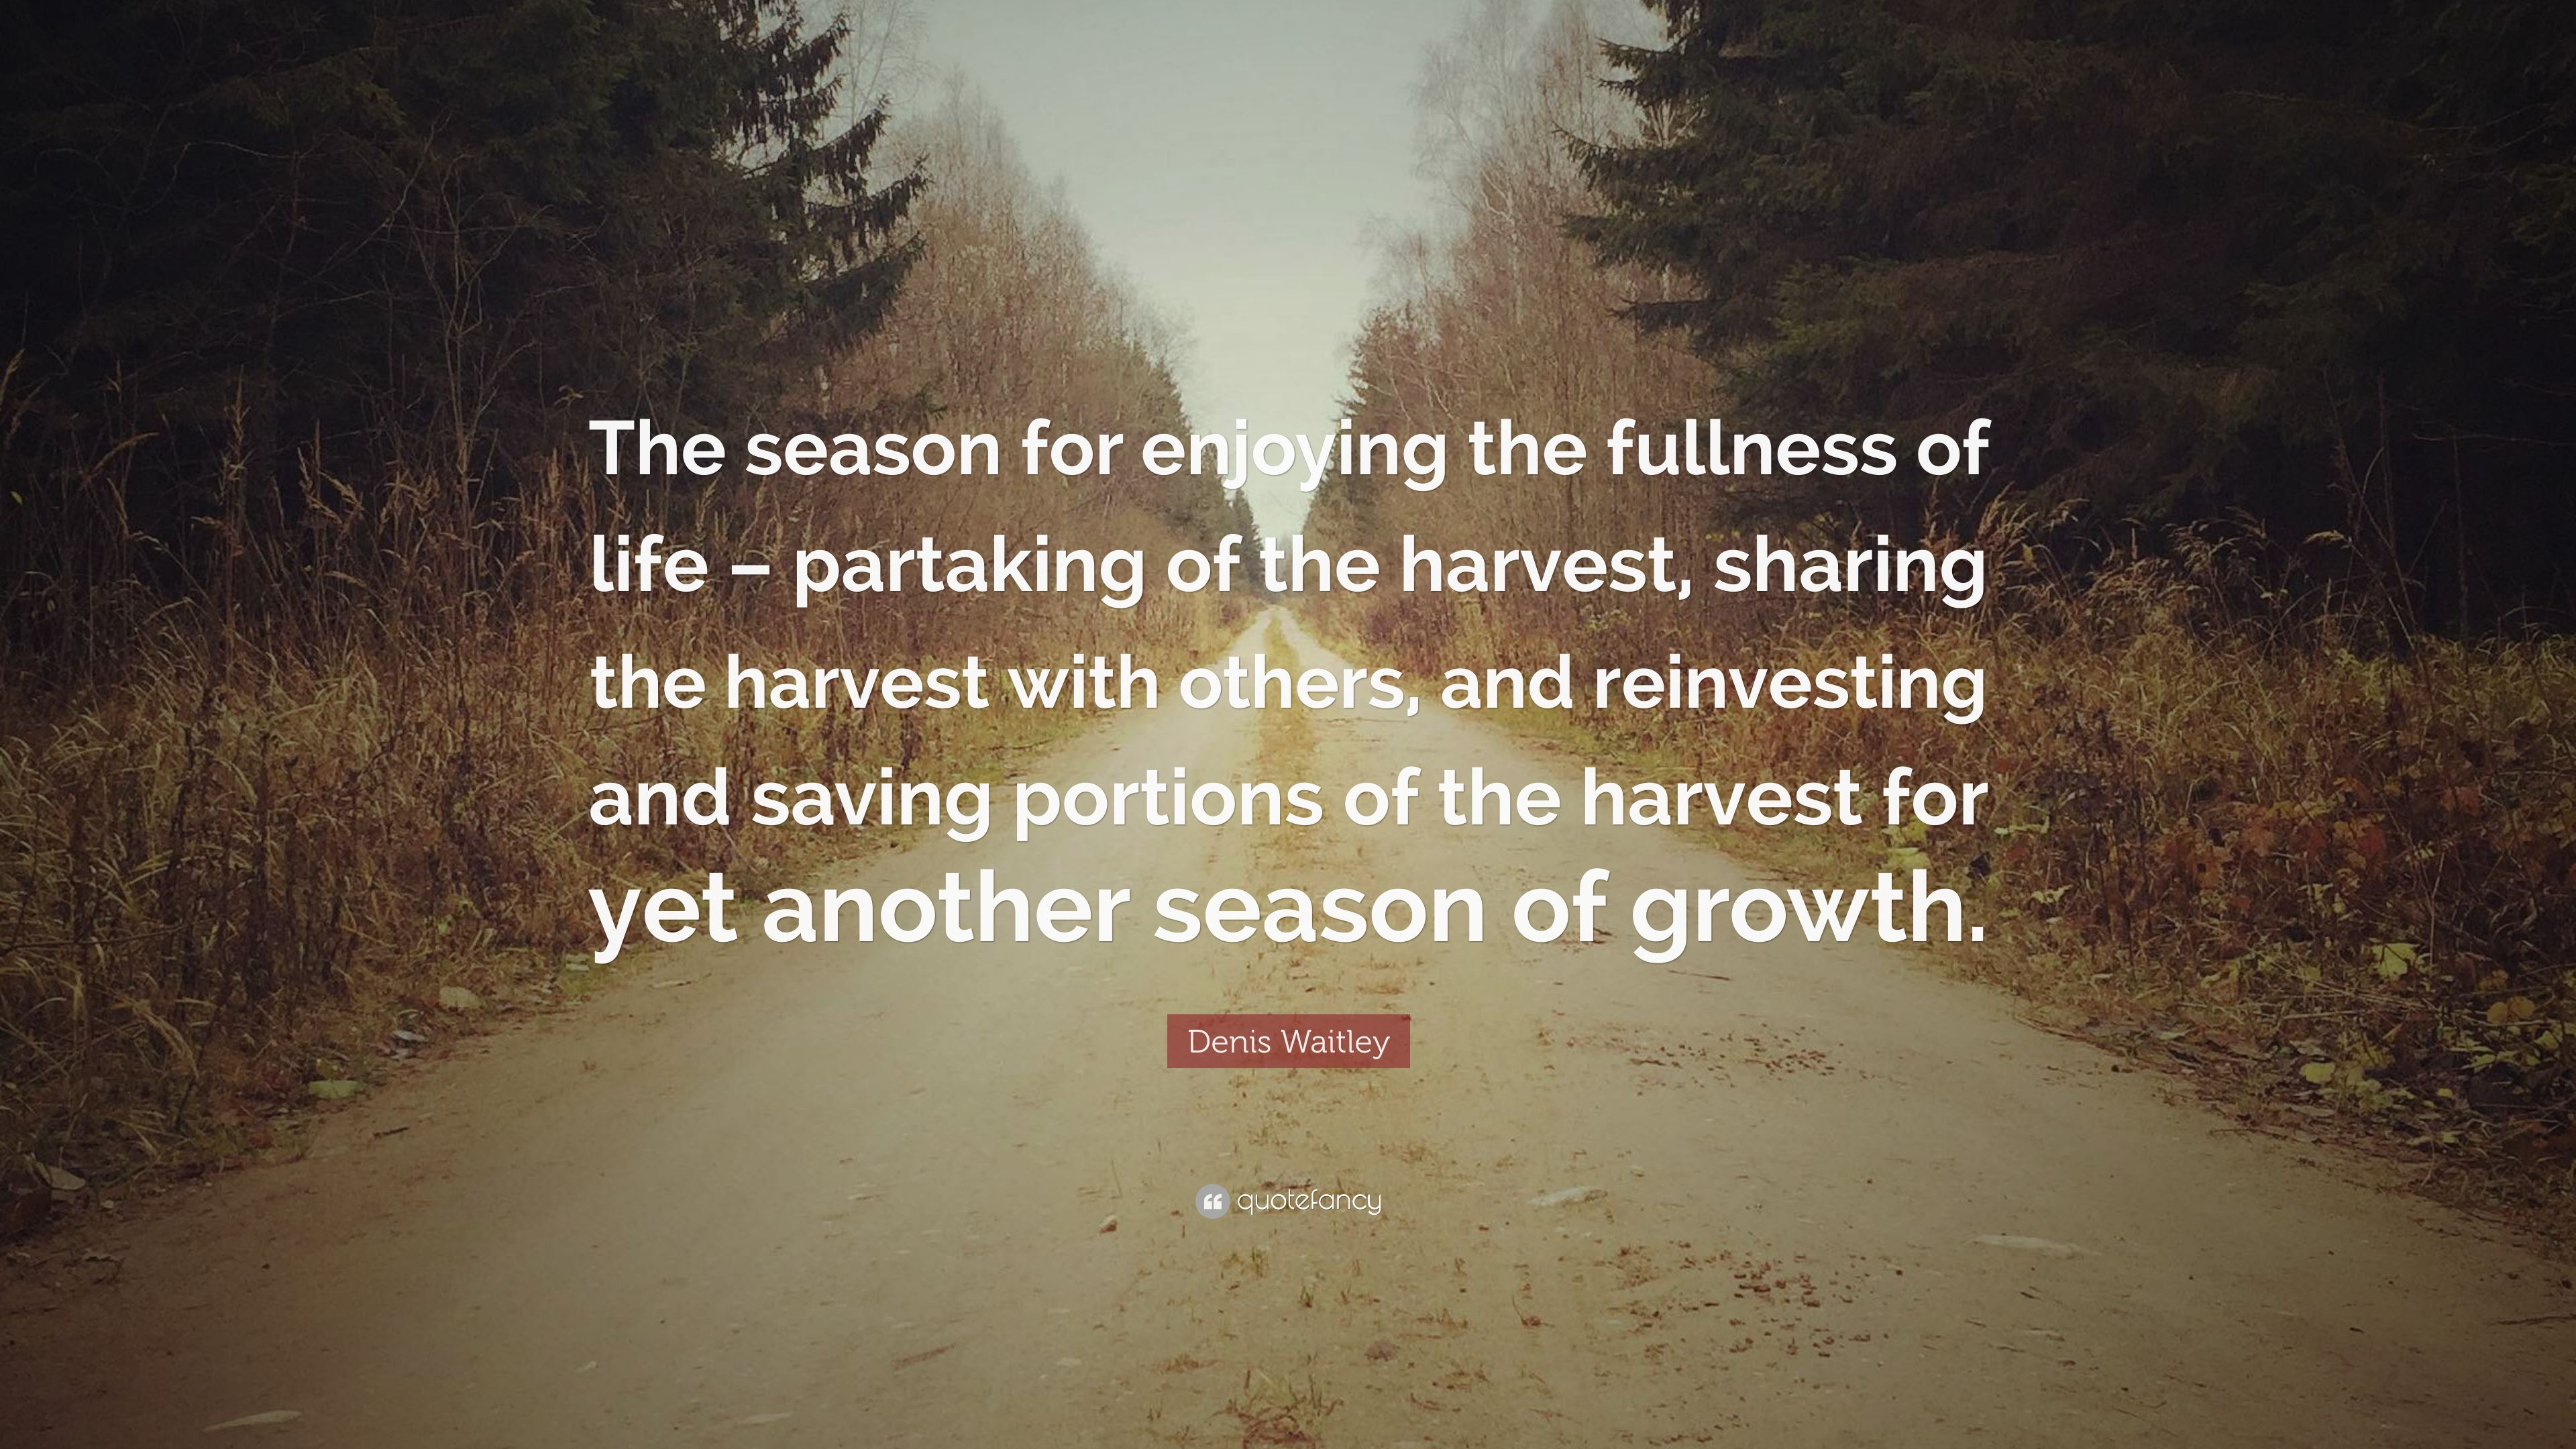 Denis Waitley Quote The Season For Enjoying The Fullness Of Life Partaking Of